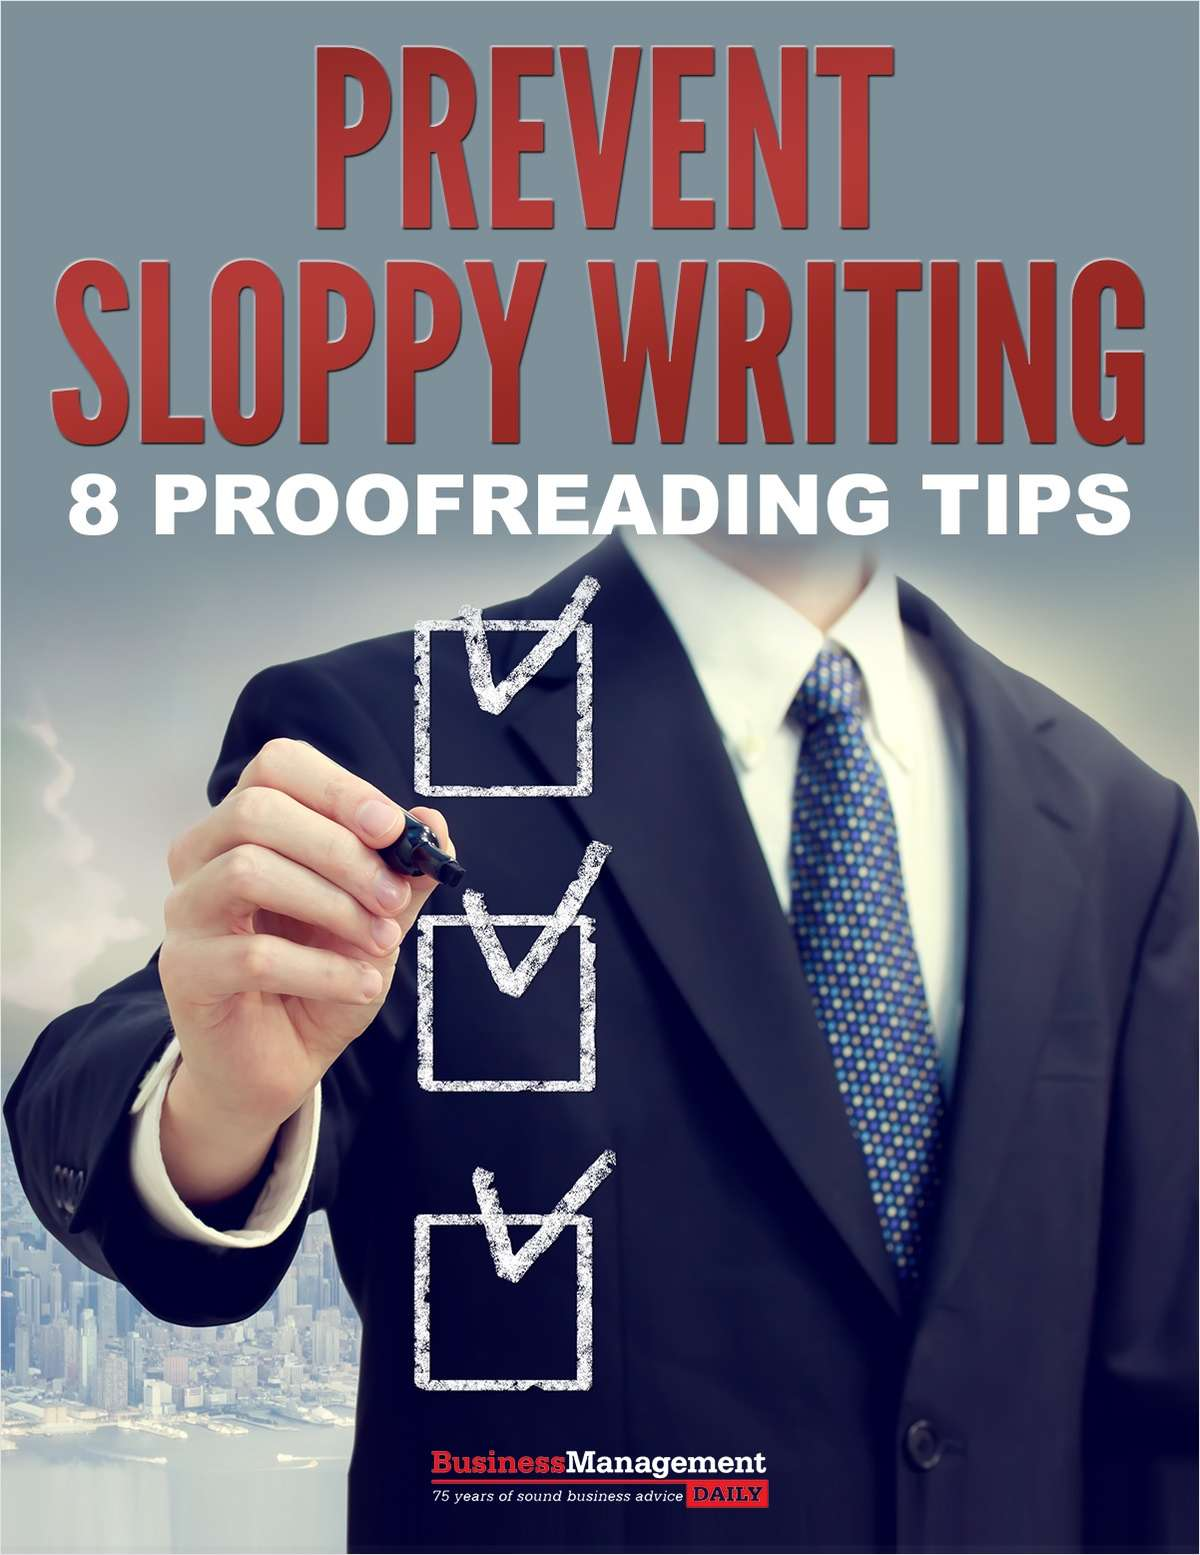 Prevent Sloppy Writing - 8 Proofreading Tips